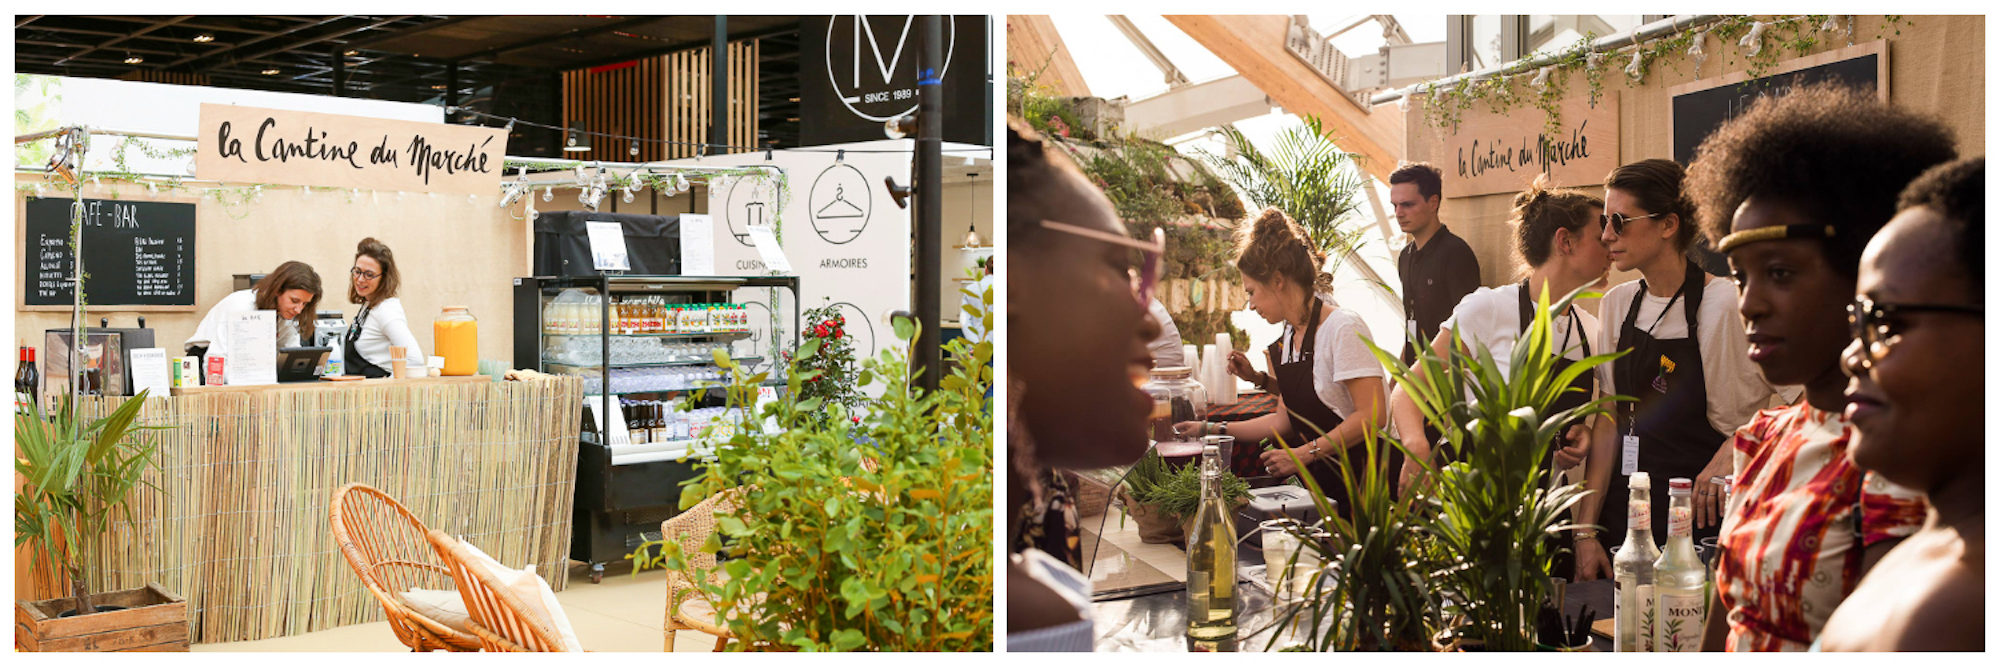 Sustainable food shopping in Paris at La Cantine du Marché, where there's a juice bar in plant-adorned surroundings (left). Three girls enjoying a drink at La Cantine du Marché, with light filtering through the glass roof (right).